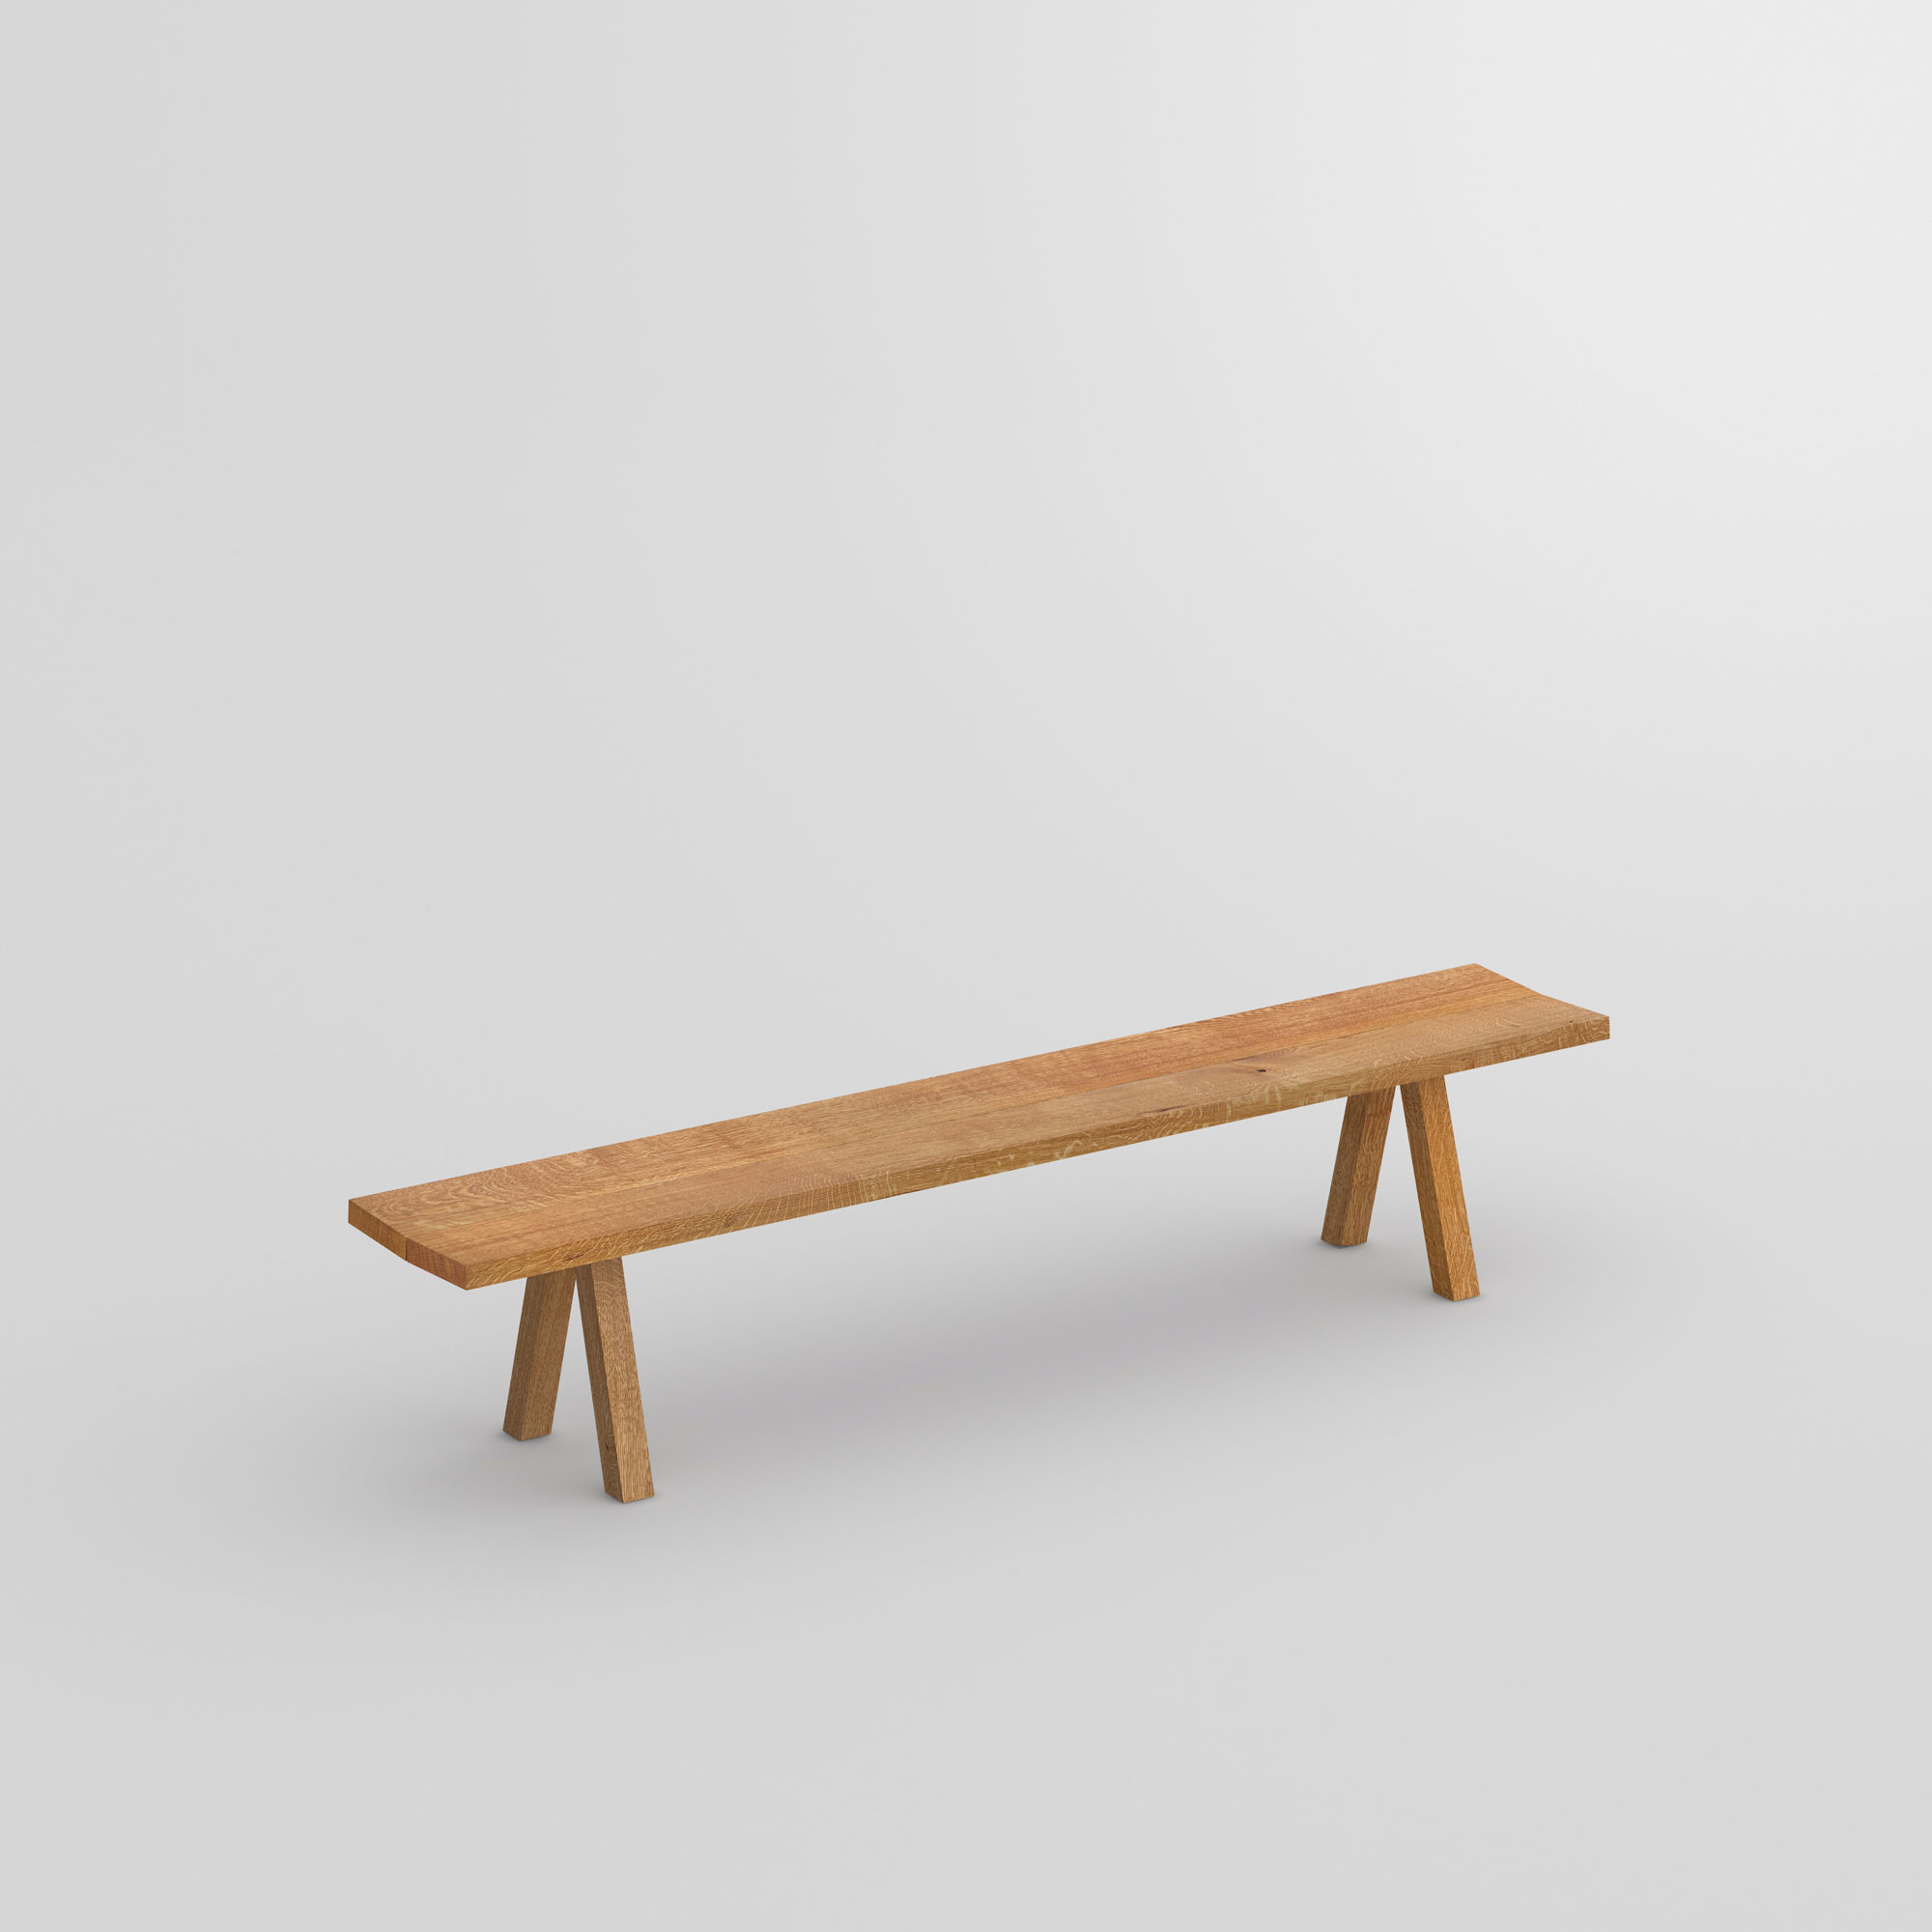 Wooden Designer Bench PAPILIO SIMPLE cam1 custom made in solid wood by vitamin design